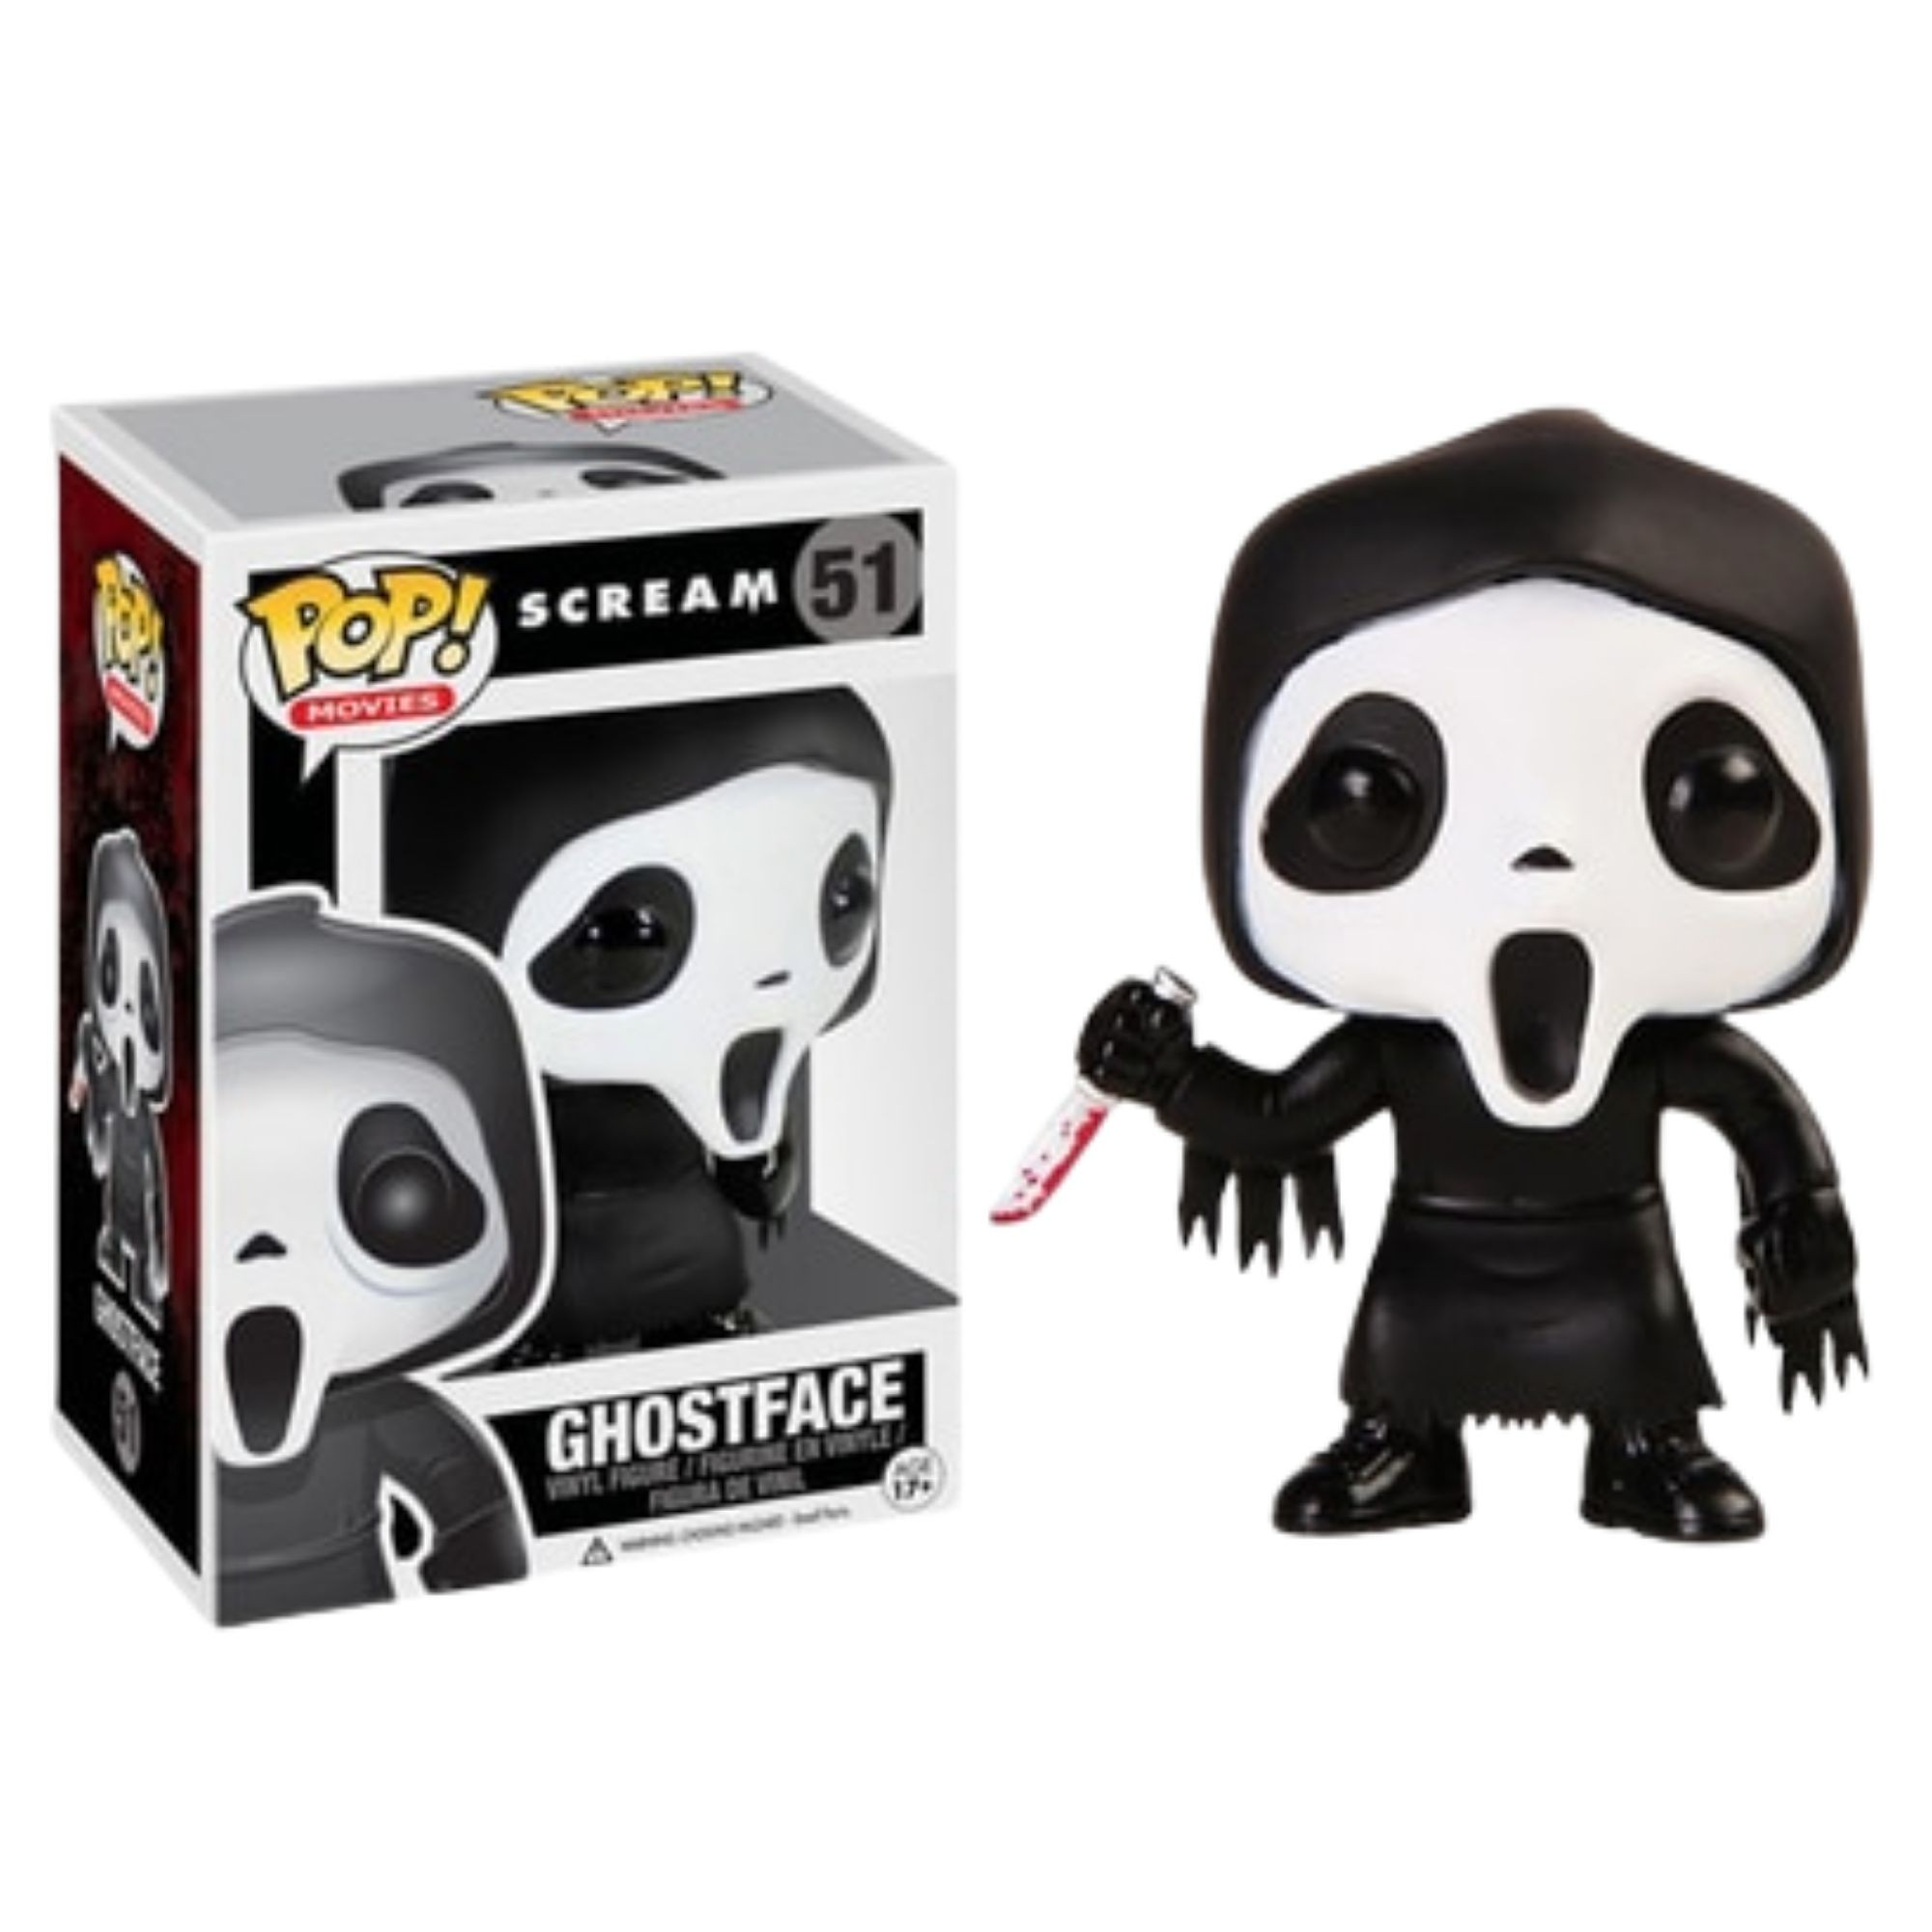 Boneco Funko Pop Movies Ghost Face Scream #51  - Game Land Brinquedos